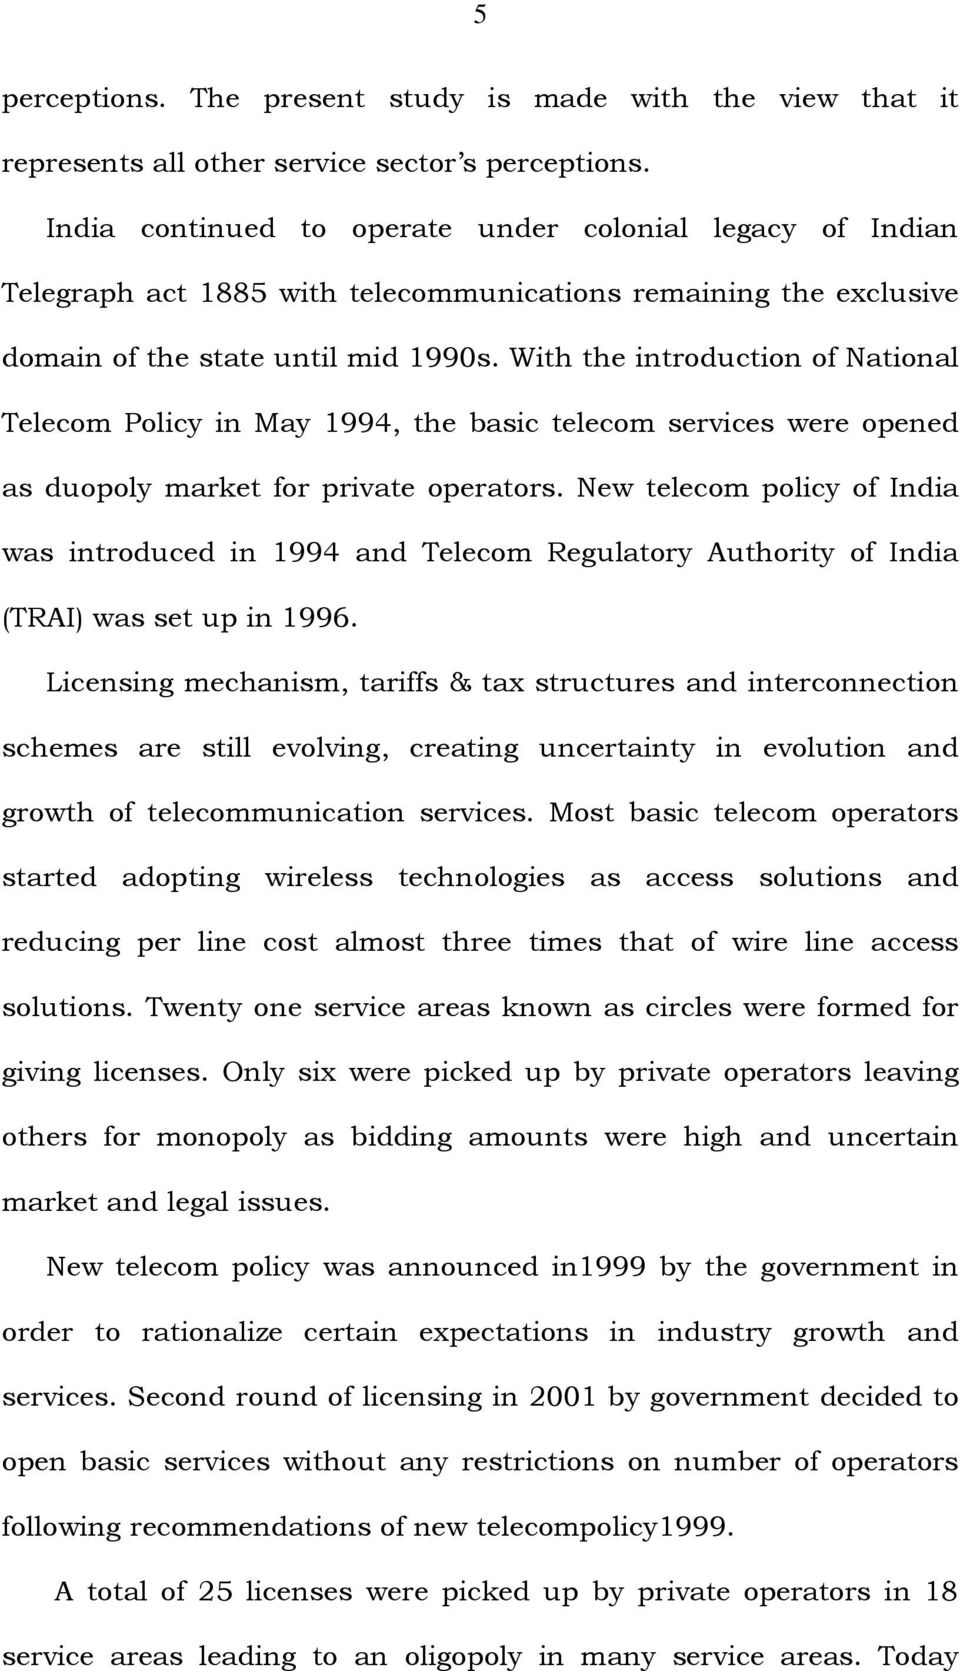 With the introduction of National Telecom Policy in May 1994, the basic telecom services were opened as duopoly market for private operators.